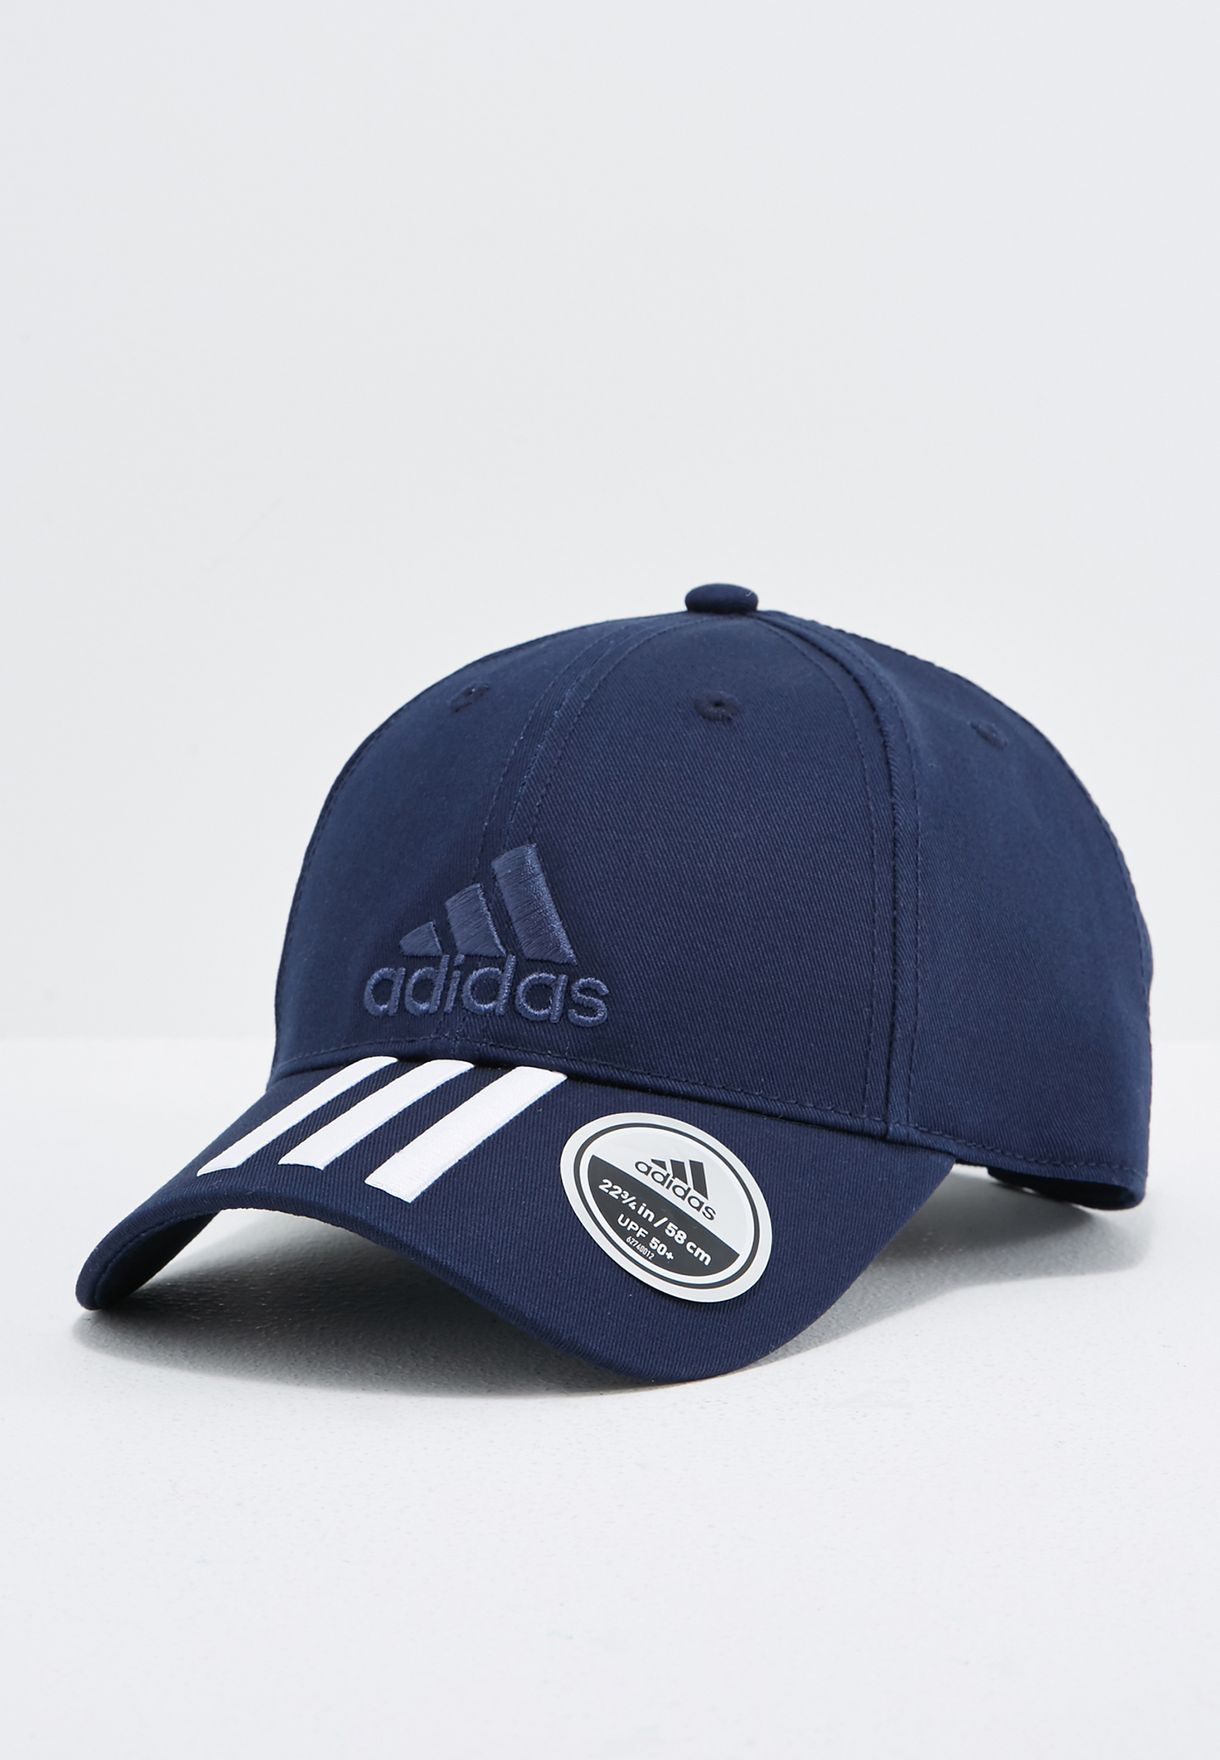 b8a479c1771 Shop adidas navy 6 Panel Classic 3 Stripe Cap BK0808 for Men in ...